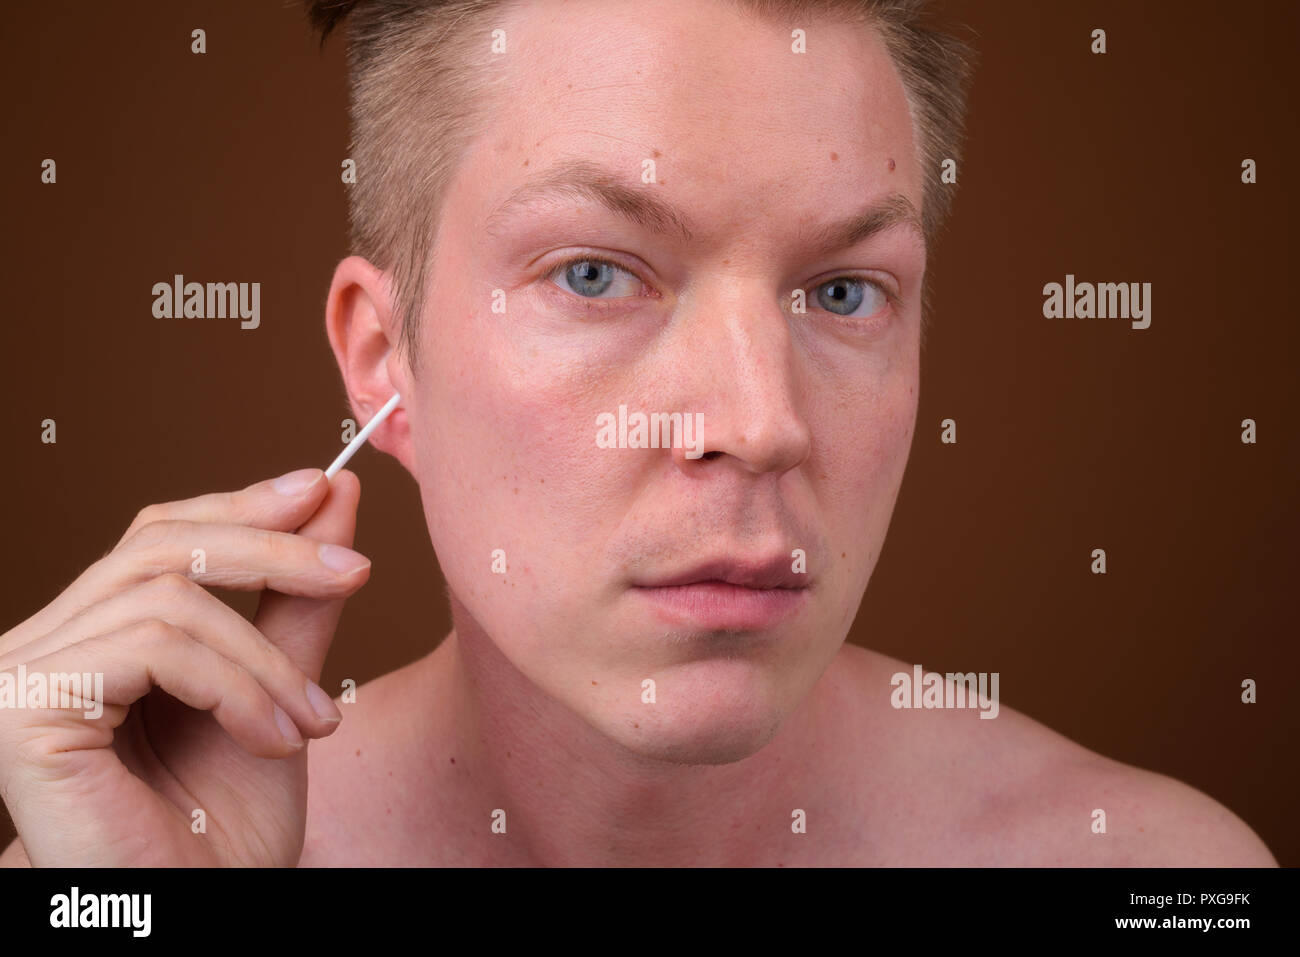 how to clean waxy ears